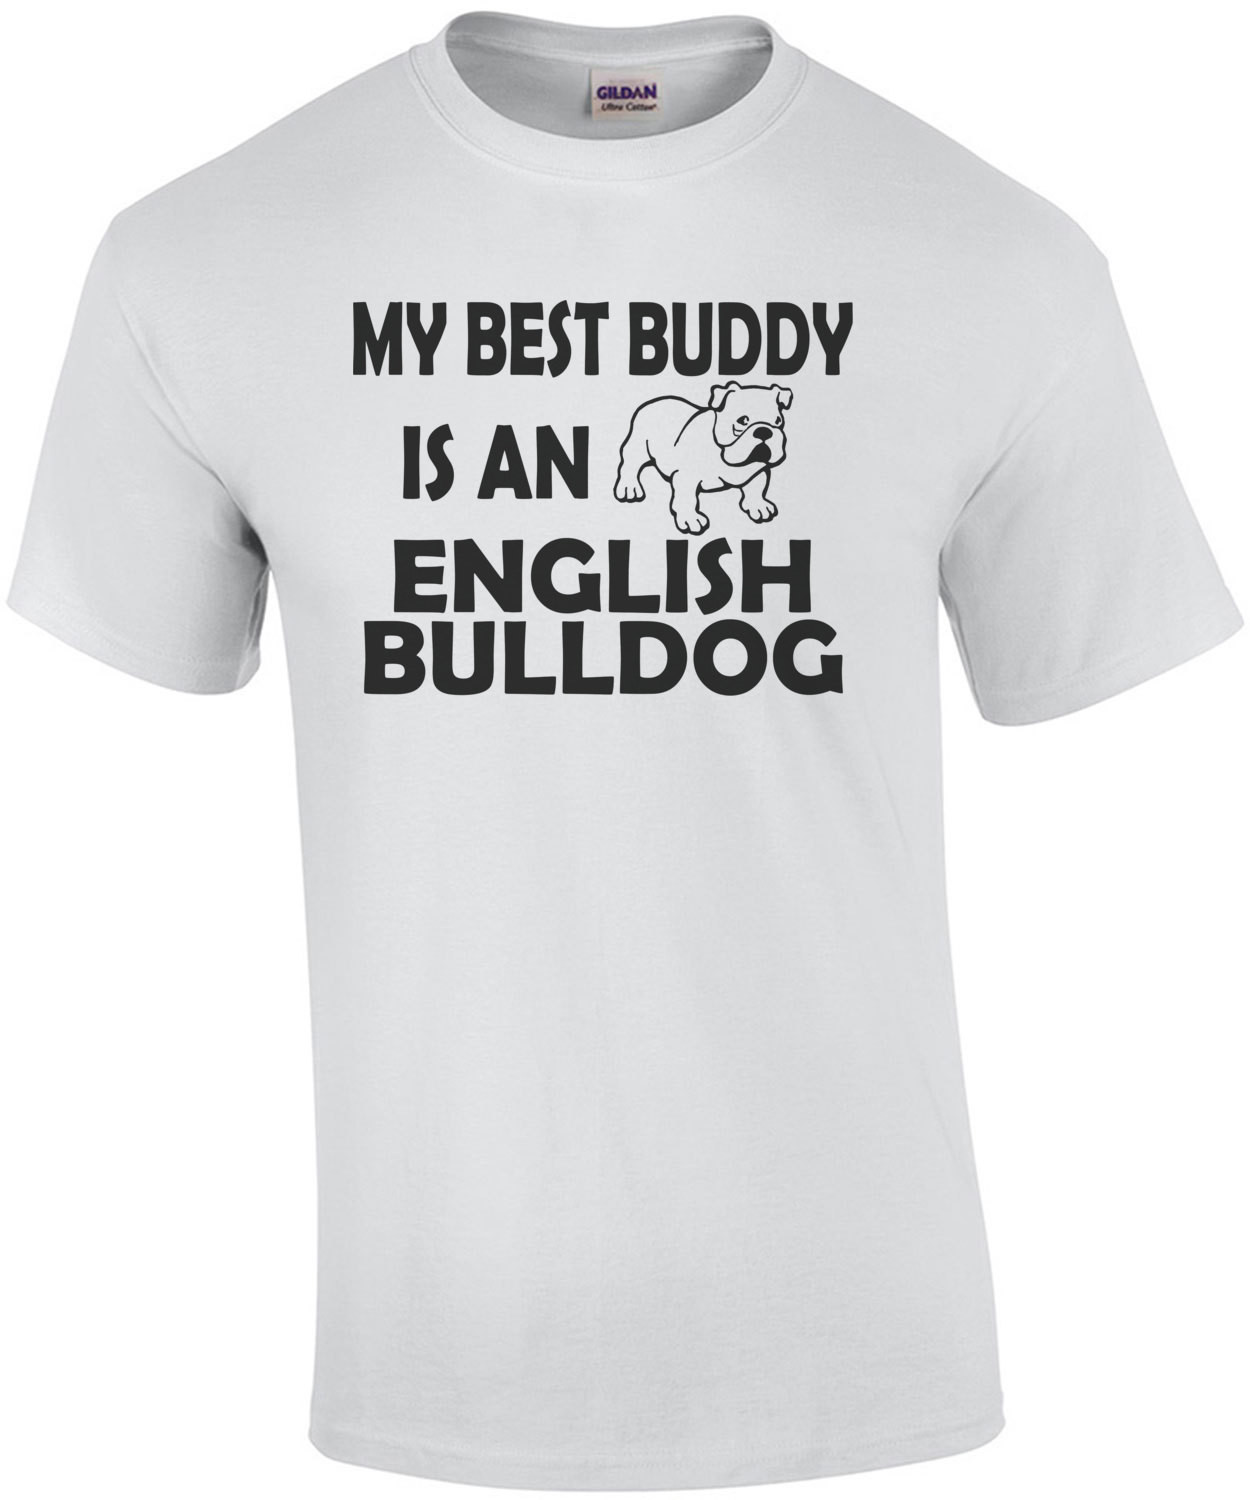 My Best Buddy Is An English Bulldog T-Shirt